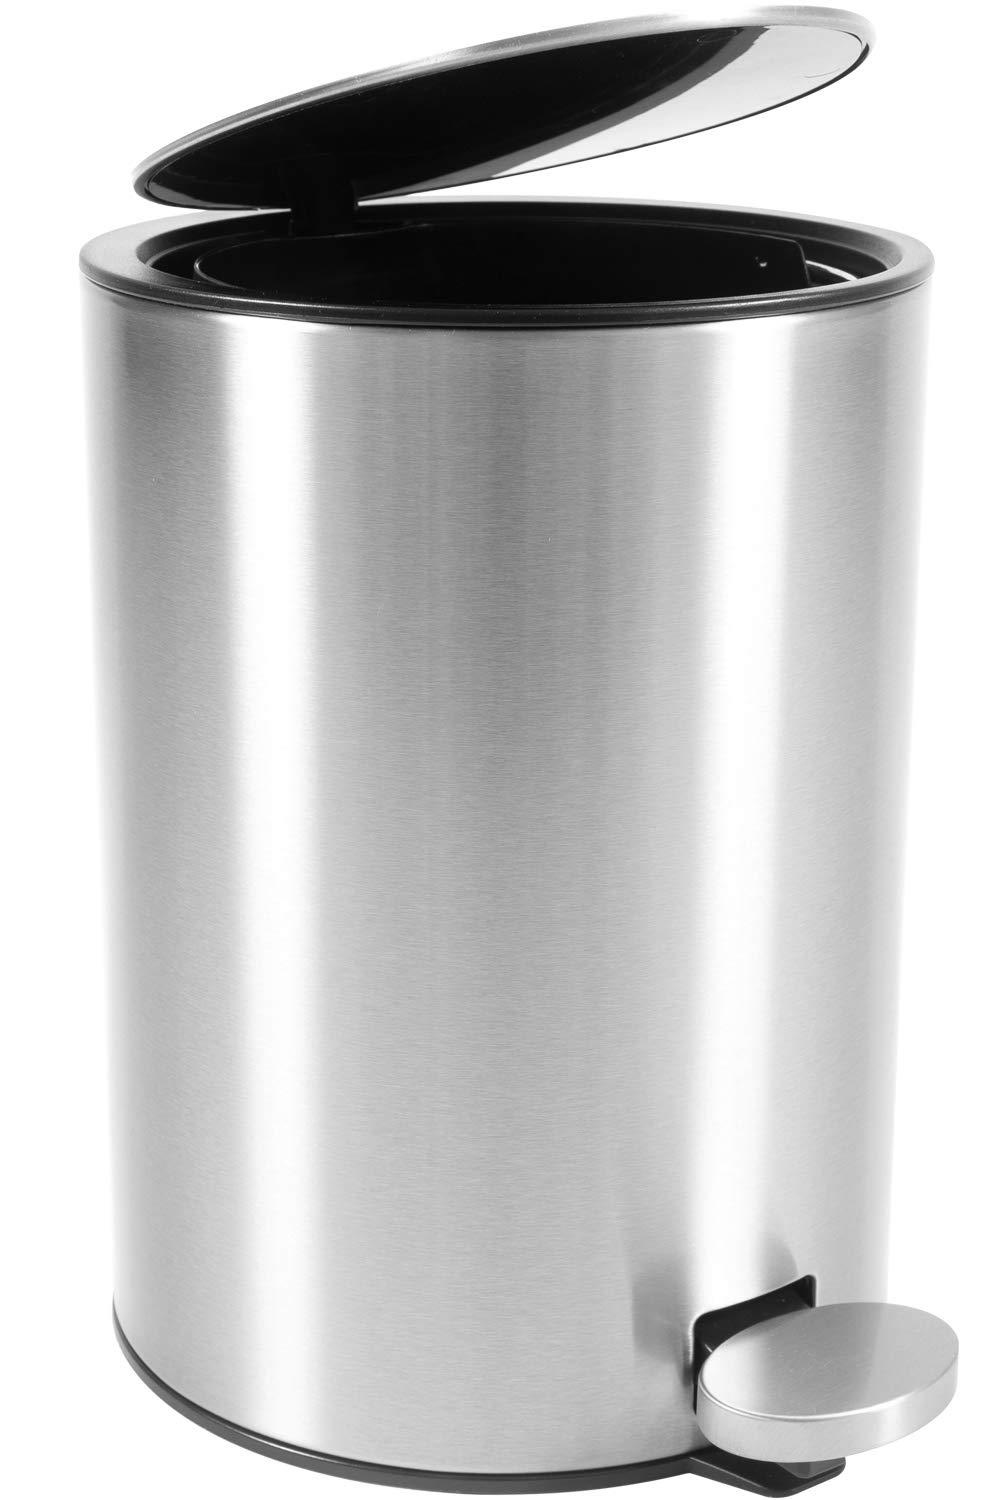 Bamodi Bathroom Bin 3L – Small Pedal Bin for Bathroom, Toilet, Restroom – Stainless Steel Rubbish Waste Trash Can with Removable Inner Bucket